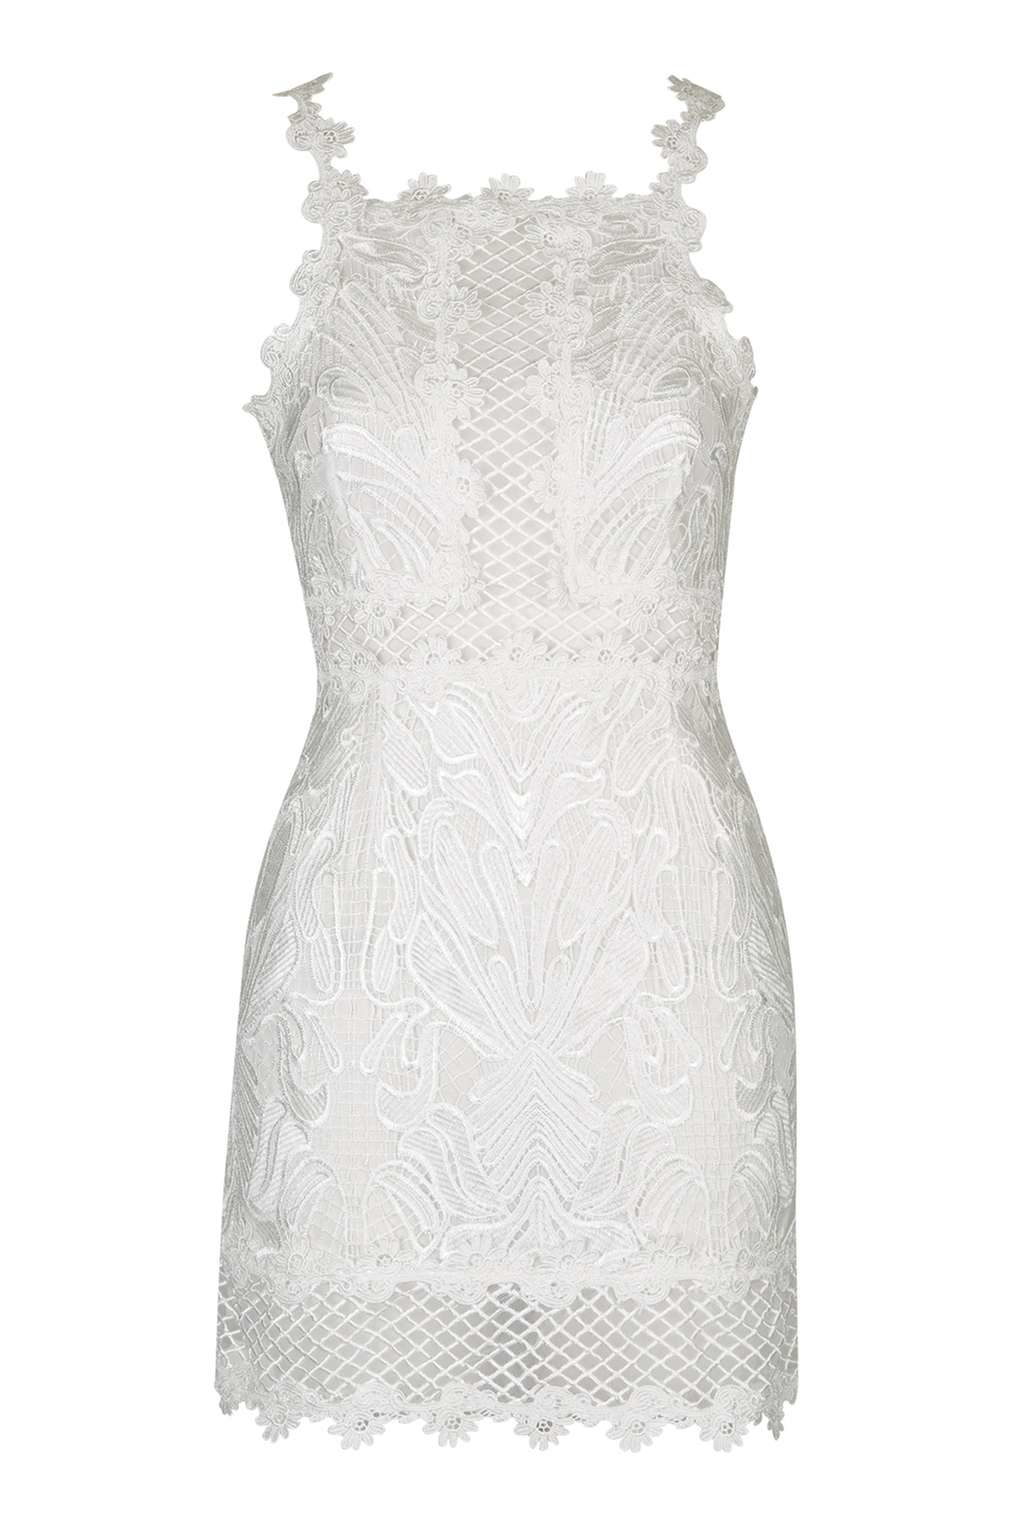 b2b97cdd46dc TOPSHOP Petite Lace Detailed Bodycon Dress in White - Lyst